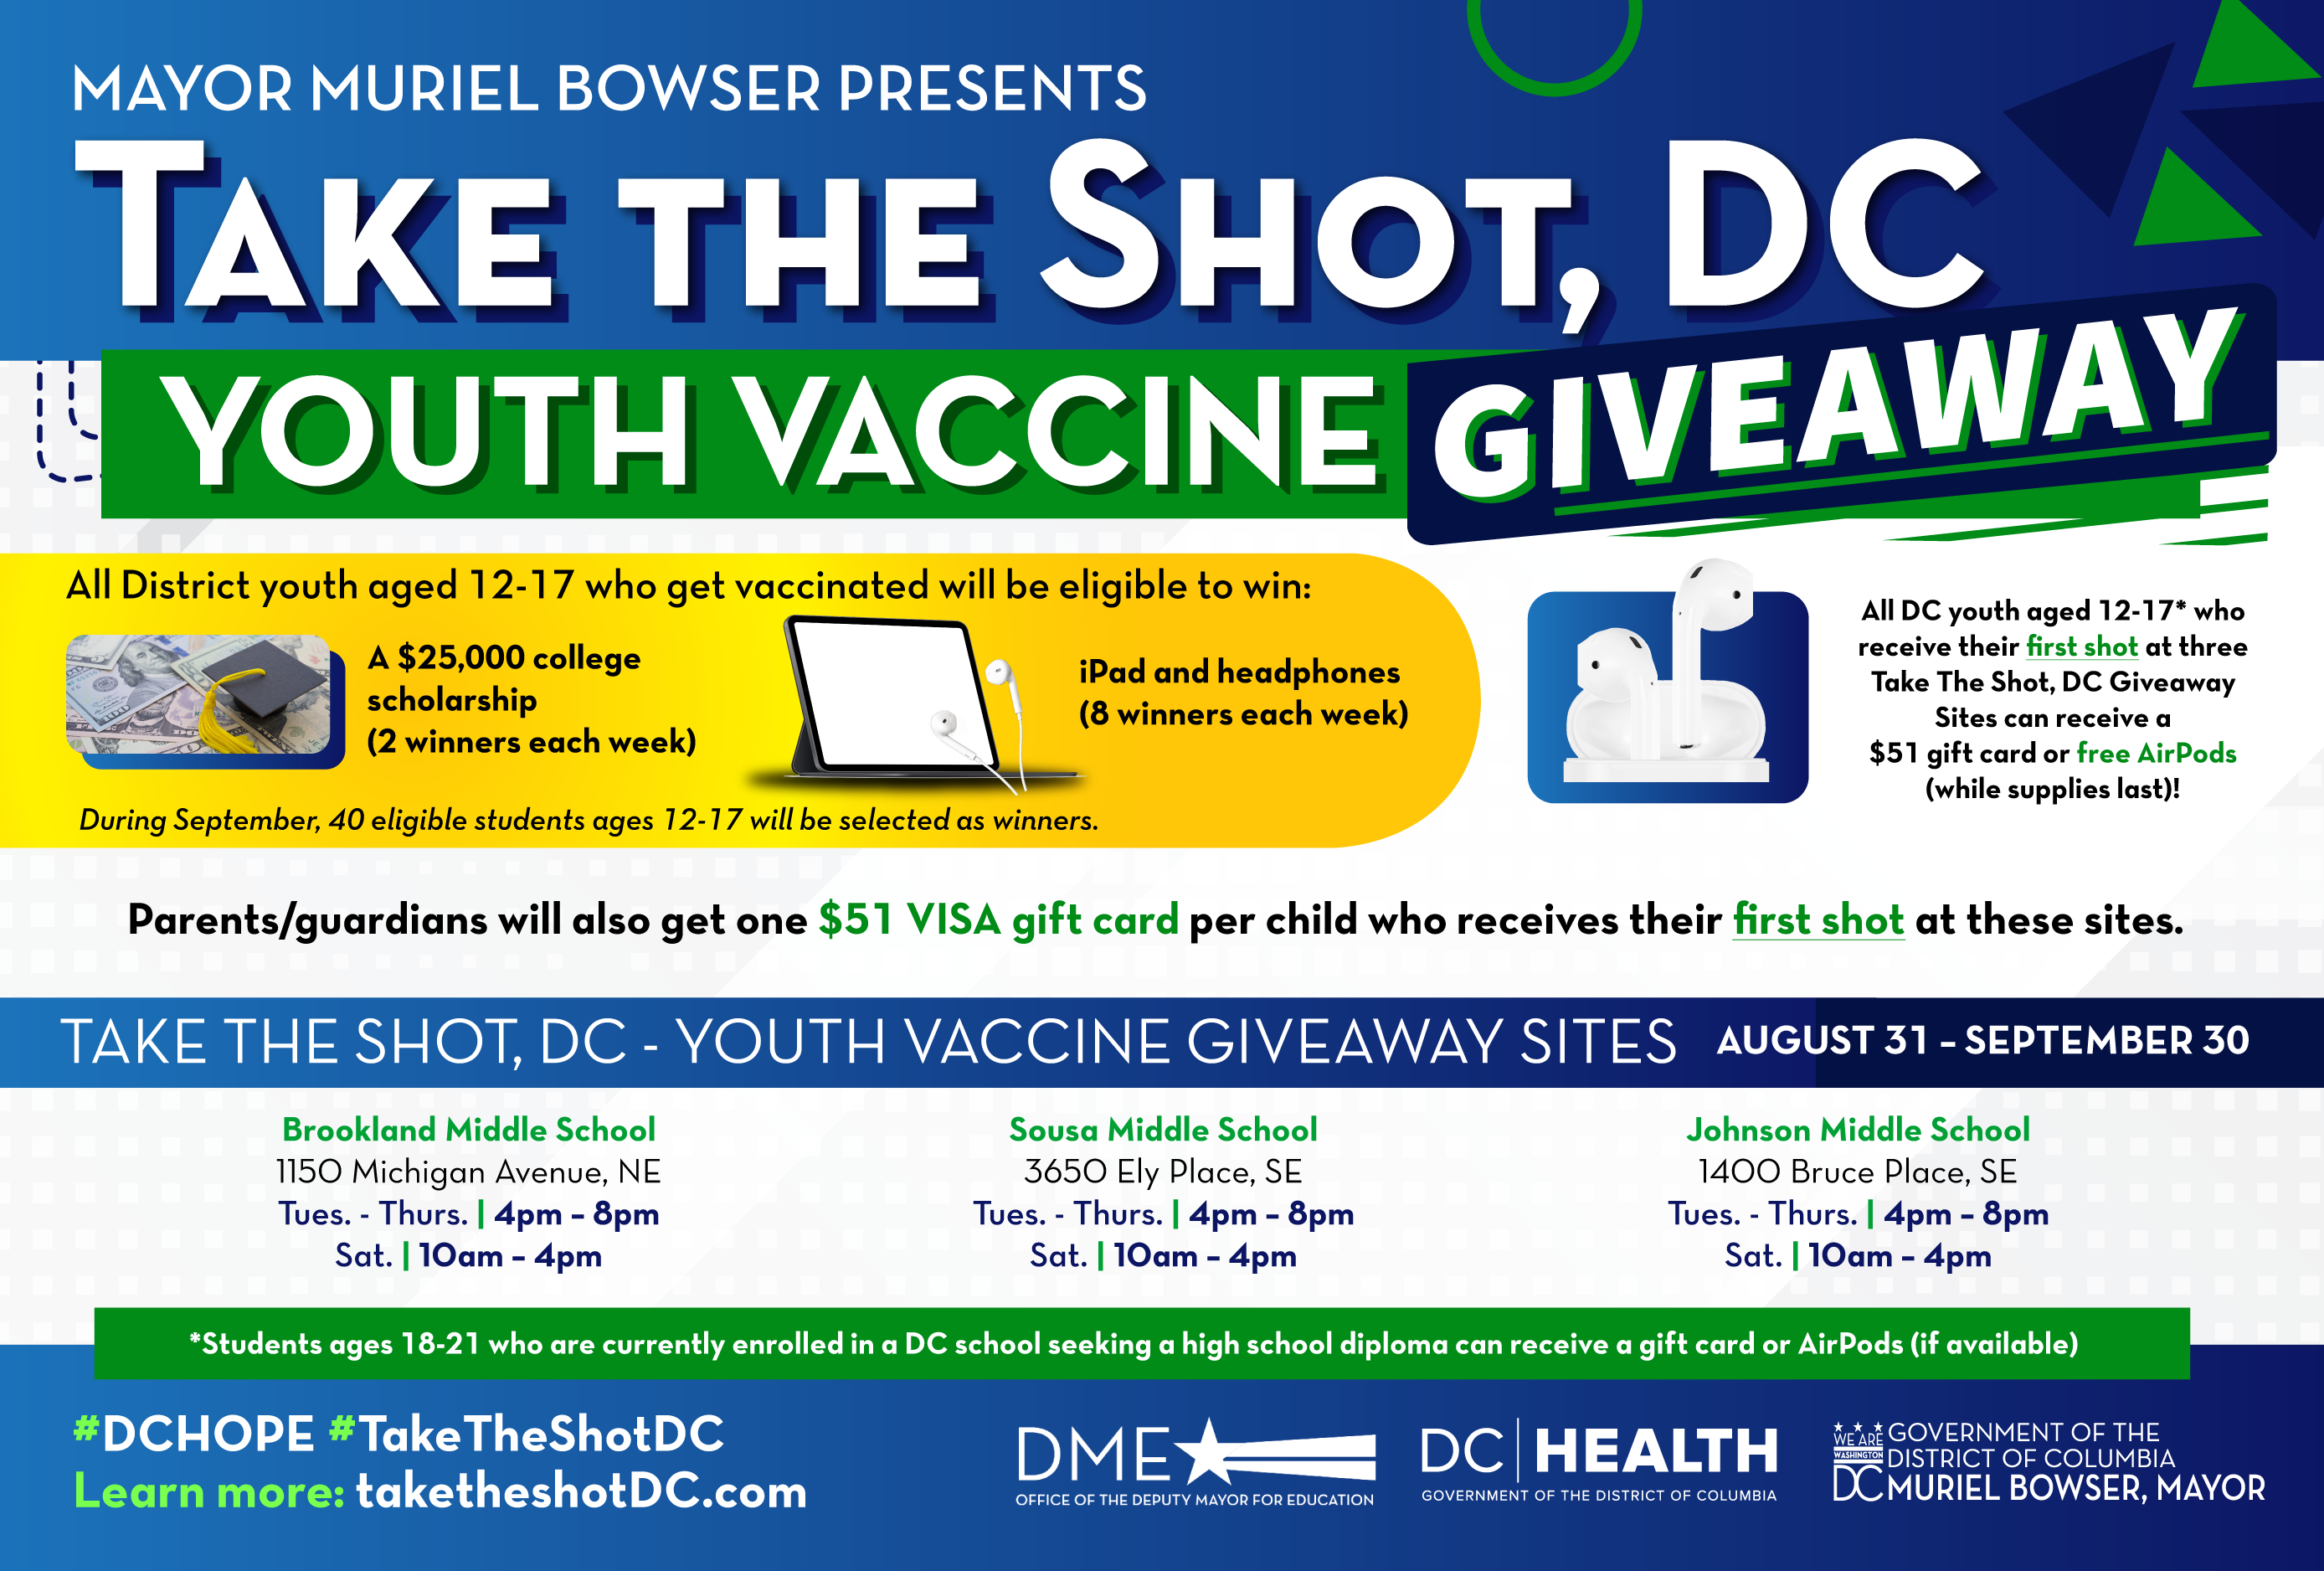 Youth Vaccine Giveaway